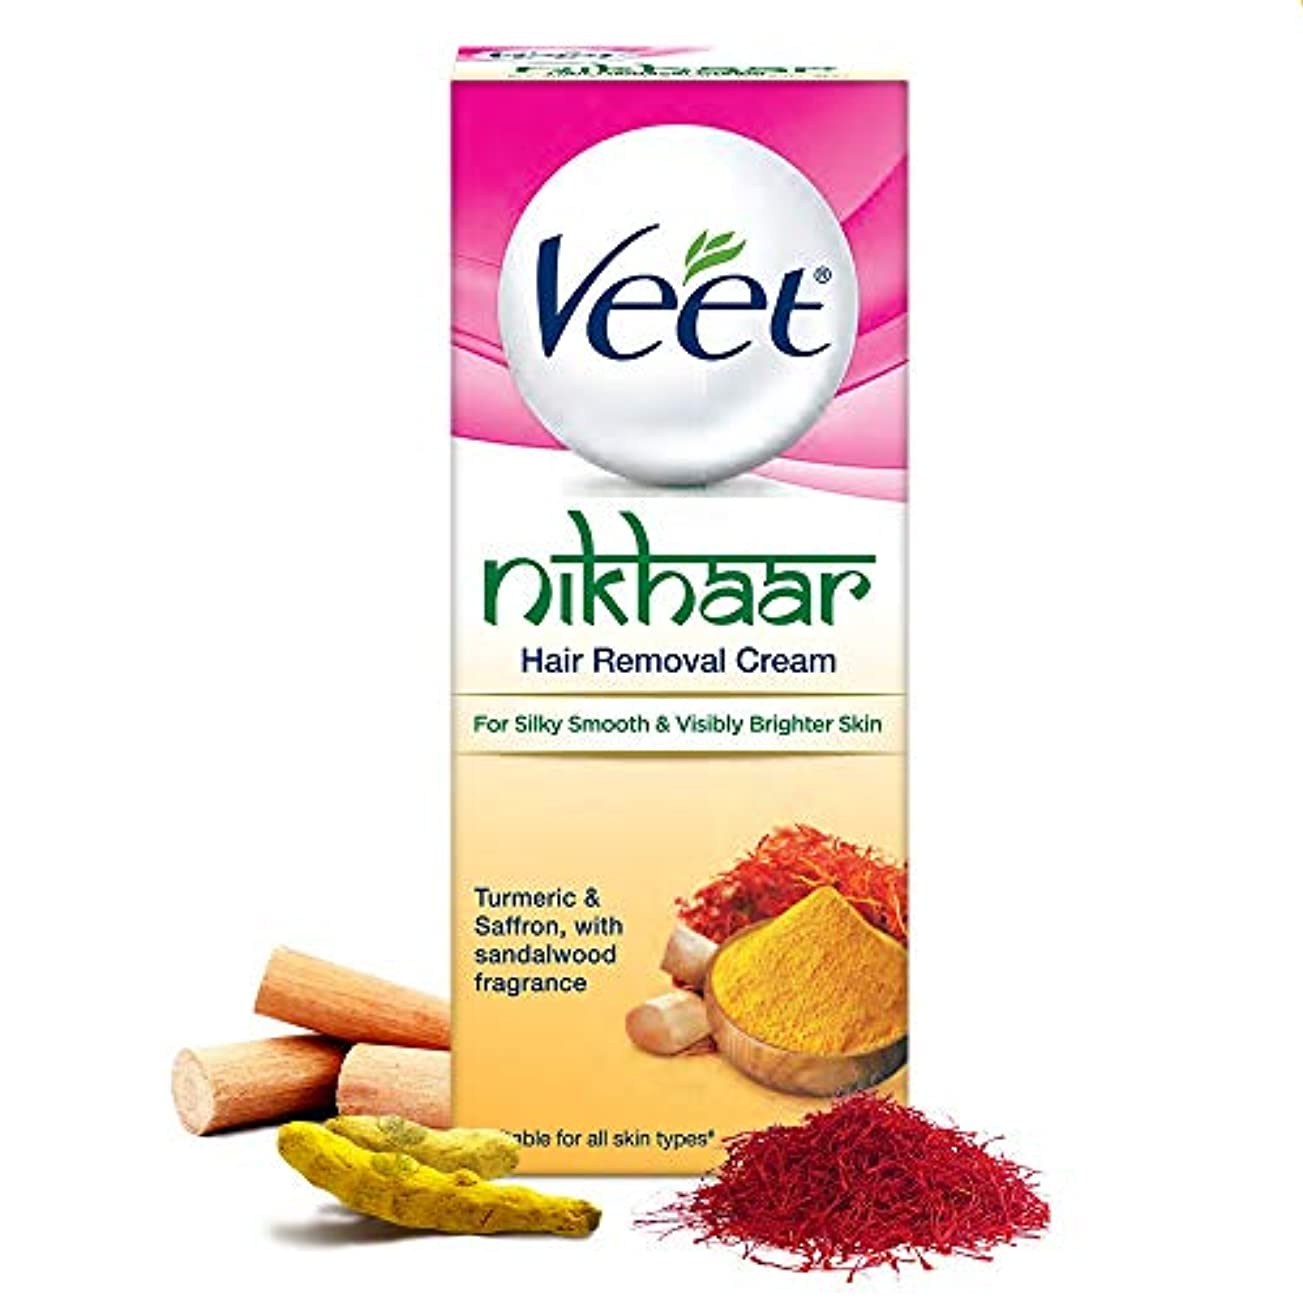 ゾーン教義派手Veet Nikhaar Hair Removal Cream for All Skin Types, 50g - India